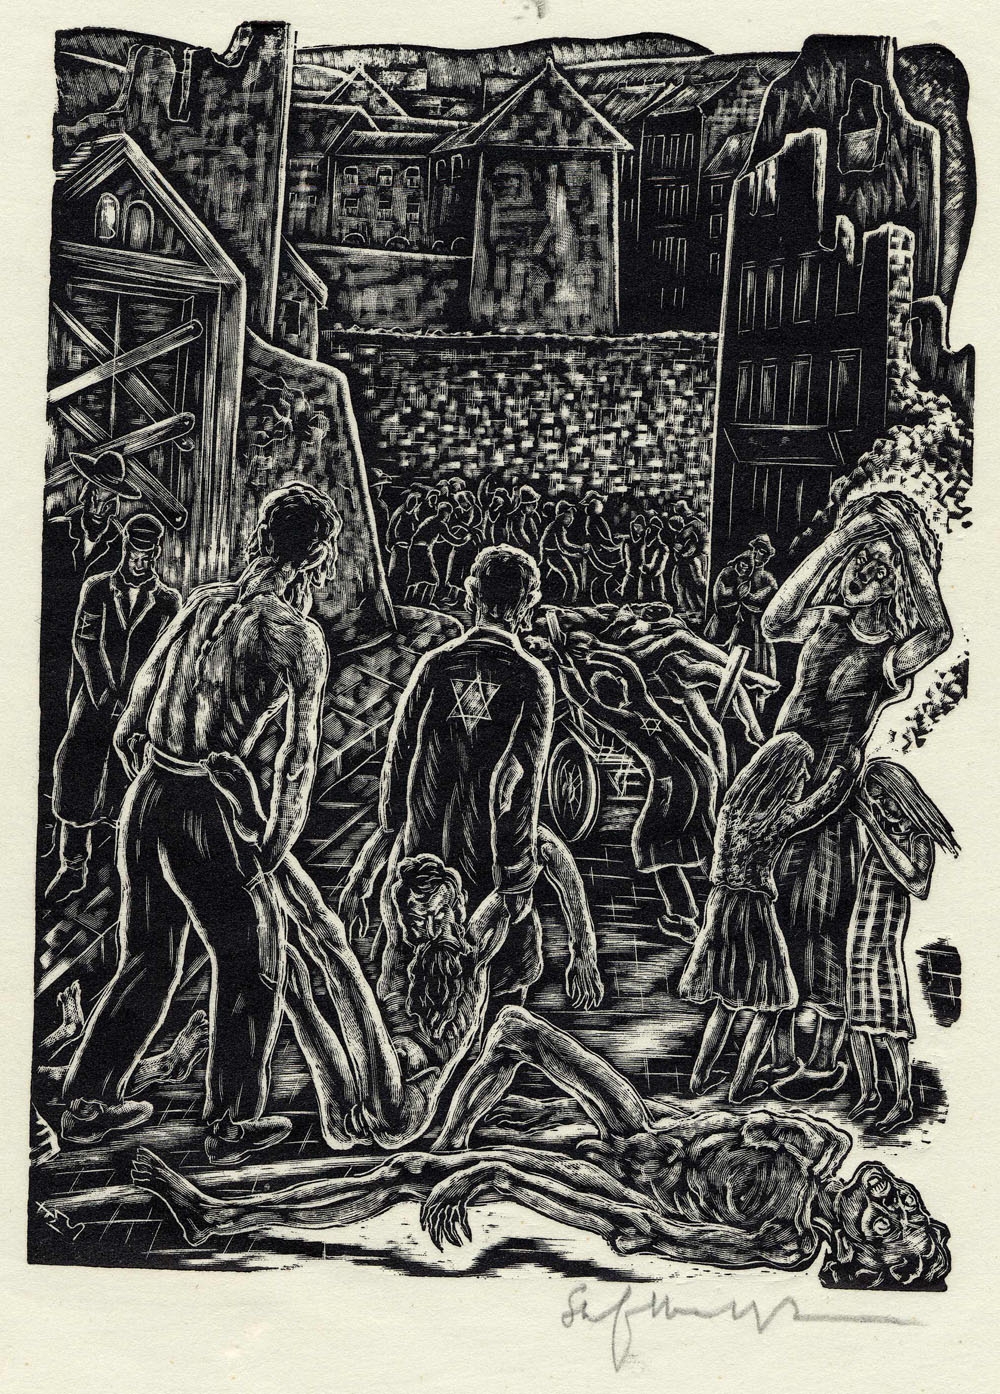 ''Death Stalks the Streets'', woodcut print by Stefan Mrozewski